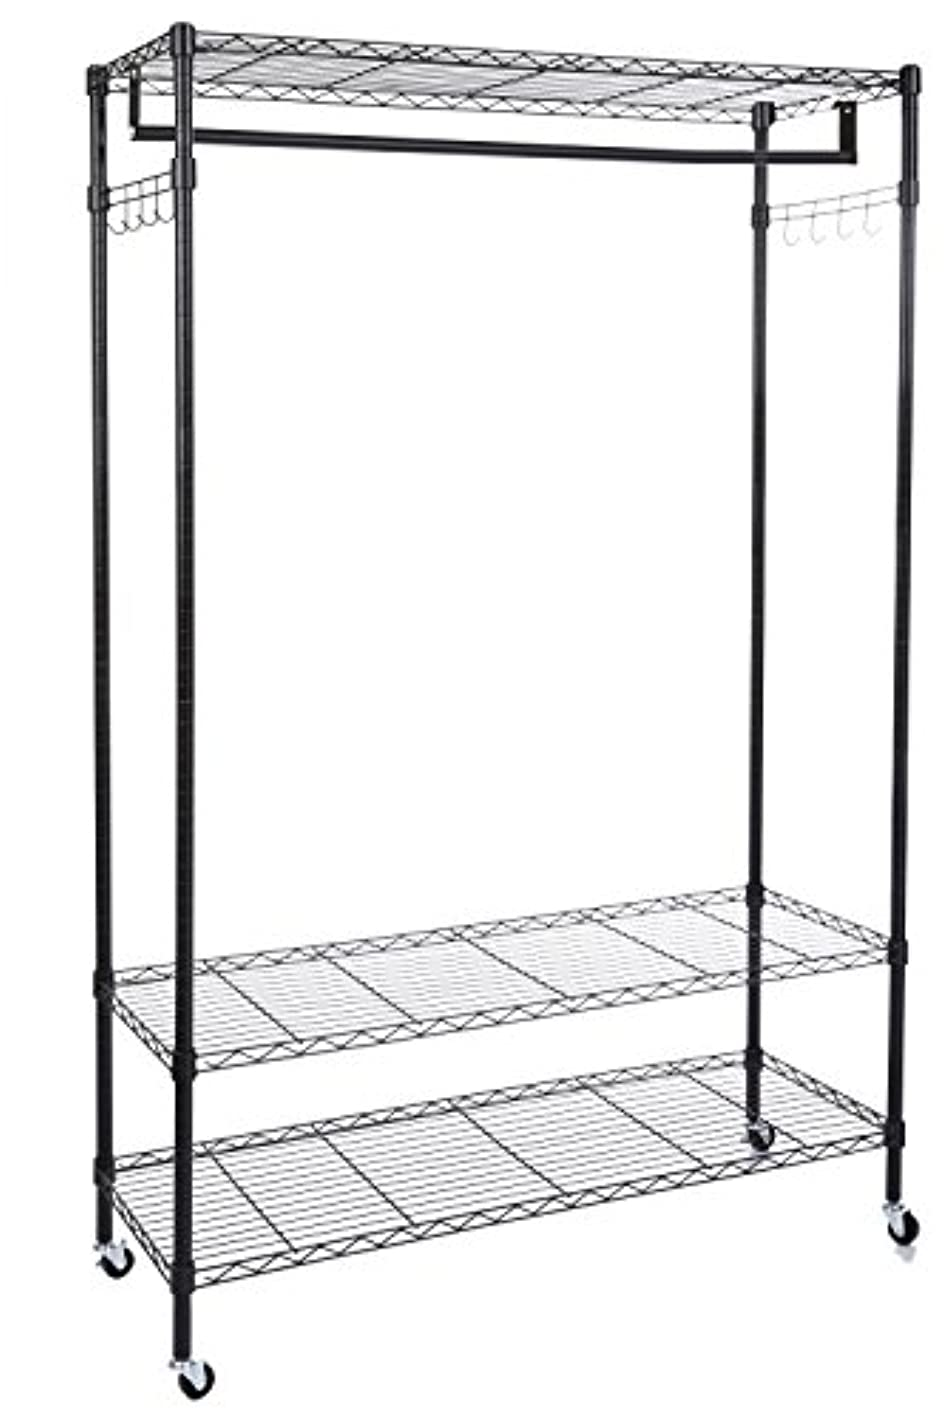 Modrine Clothing Rolling Rack, 3 Tiers Heavy Duty Garment Rack, with Lockable Wheels, 2 Side Hooks and 1 Clothes Rod (Black)